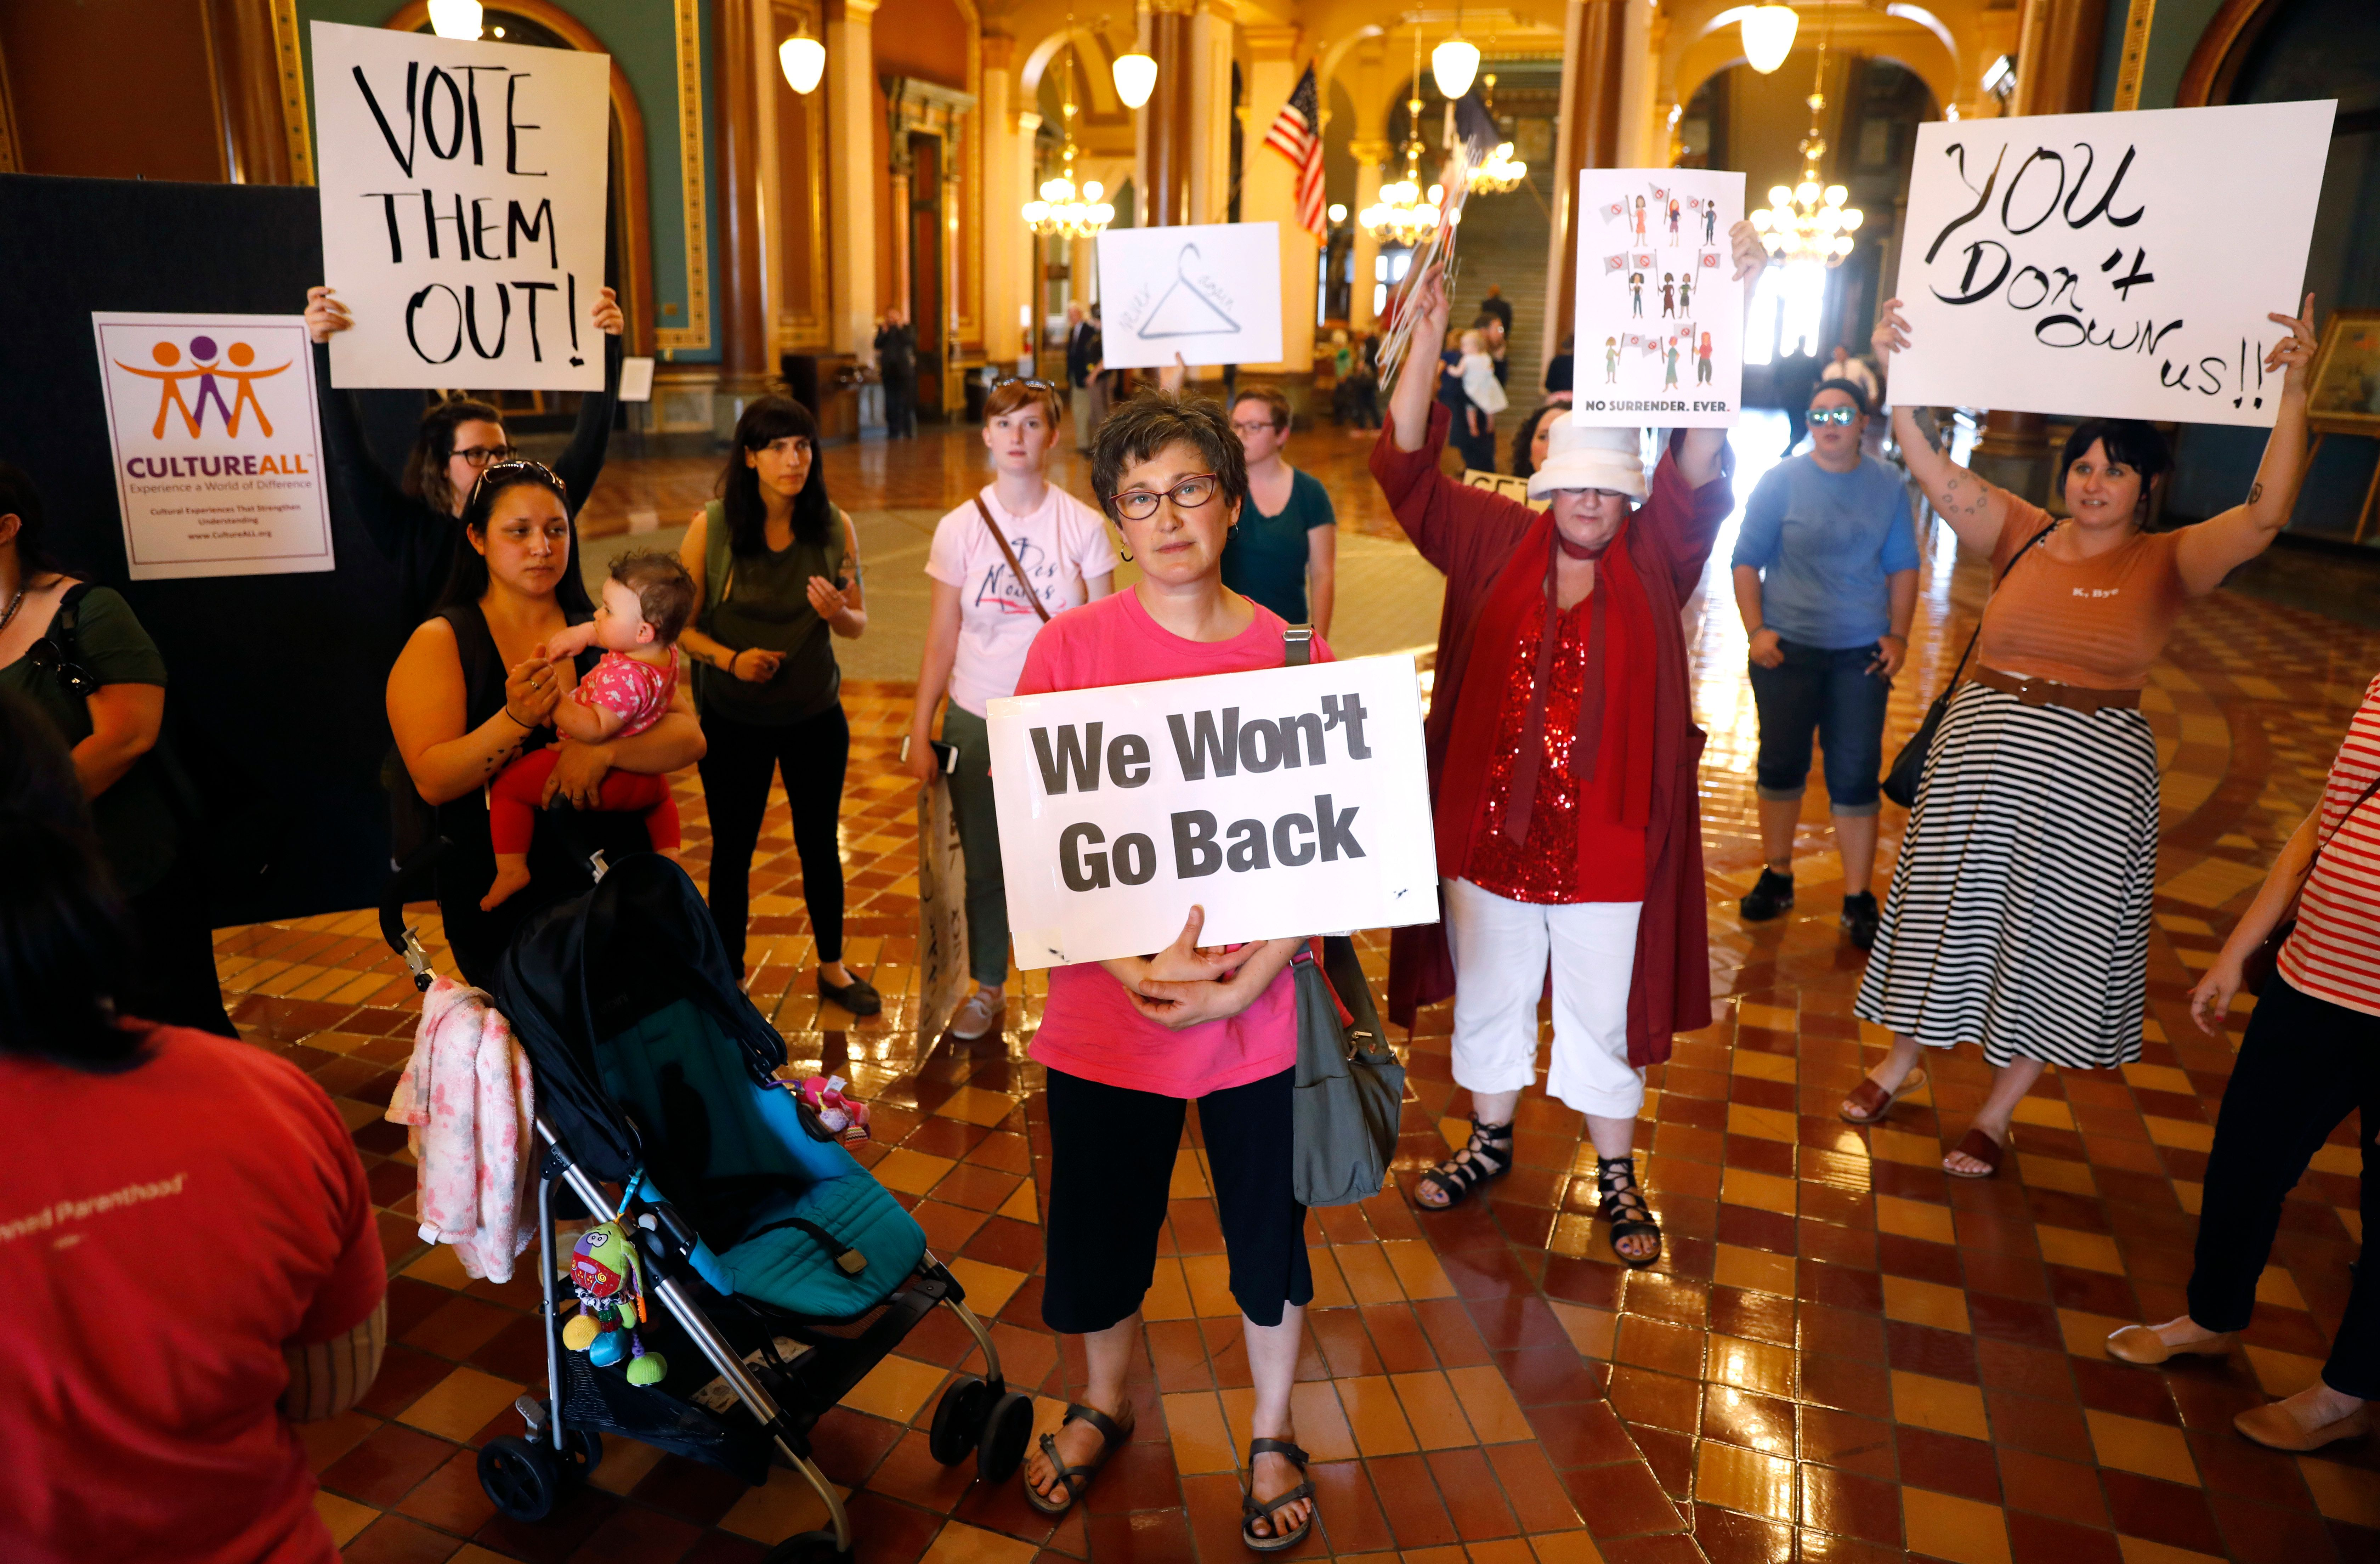 Protesters rally outside Iowa Gov. Kim Reynolds' office, on May 4, 2018, at the Statehouse in Des Moines.